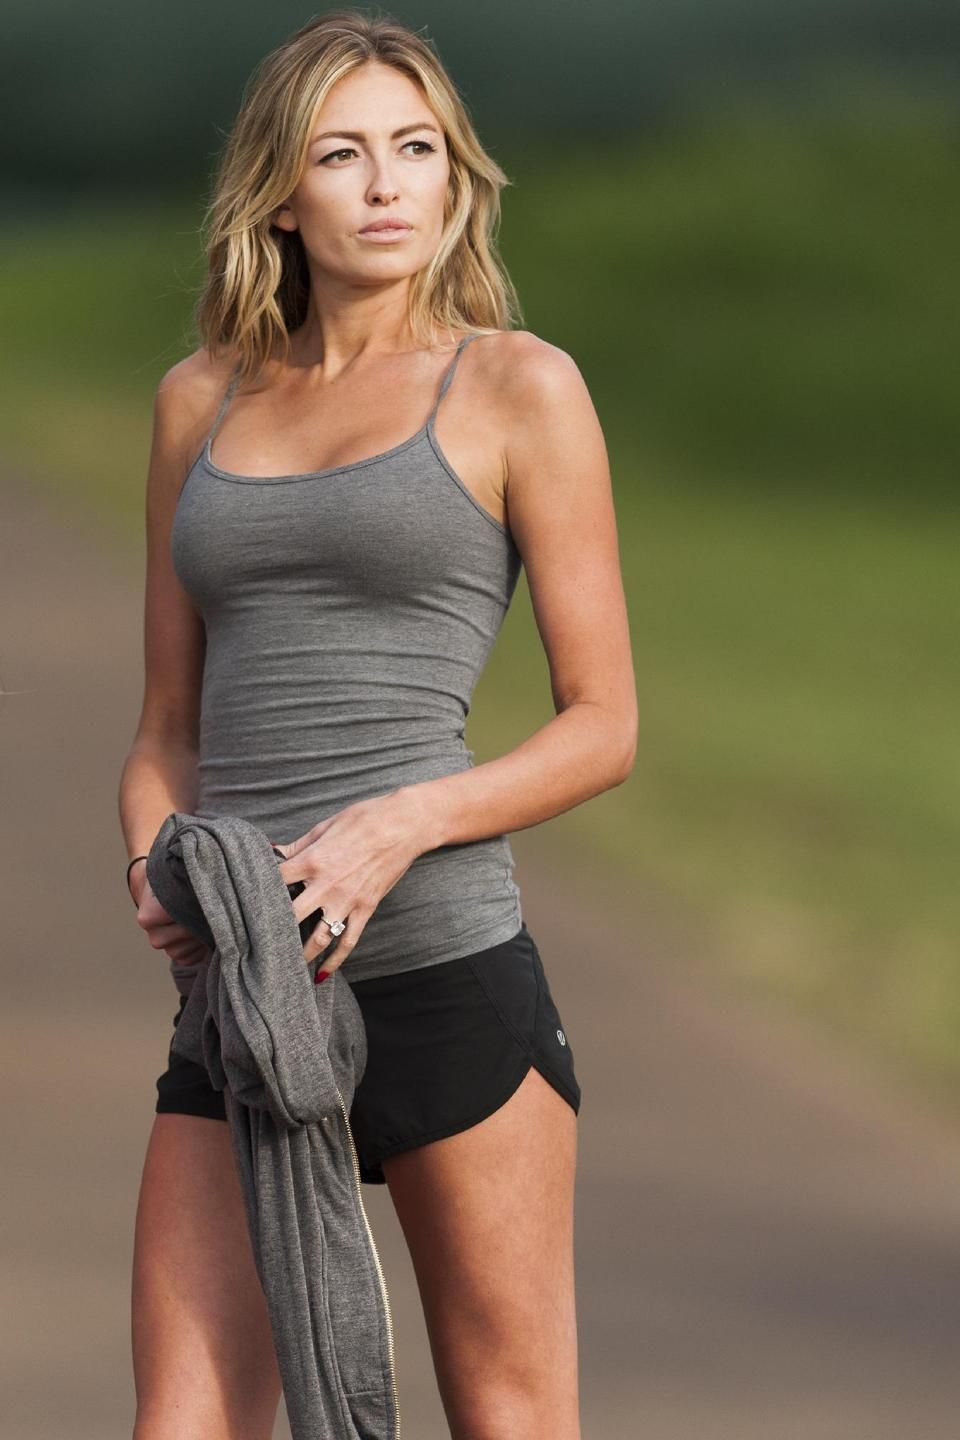 Golf Babe Sports Women Pinterest Lpga Tour Lpga And